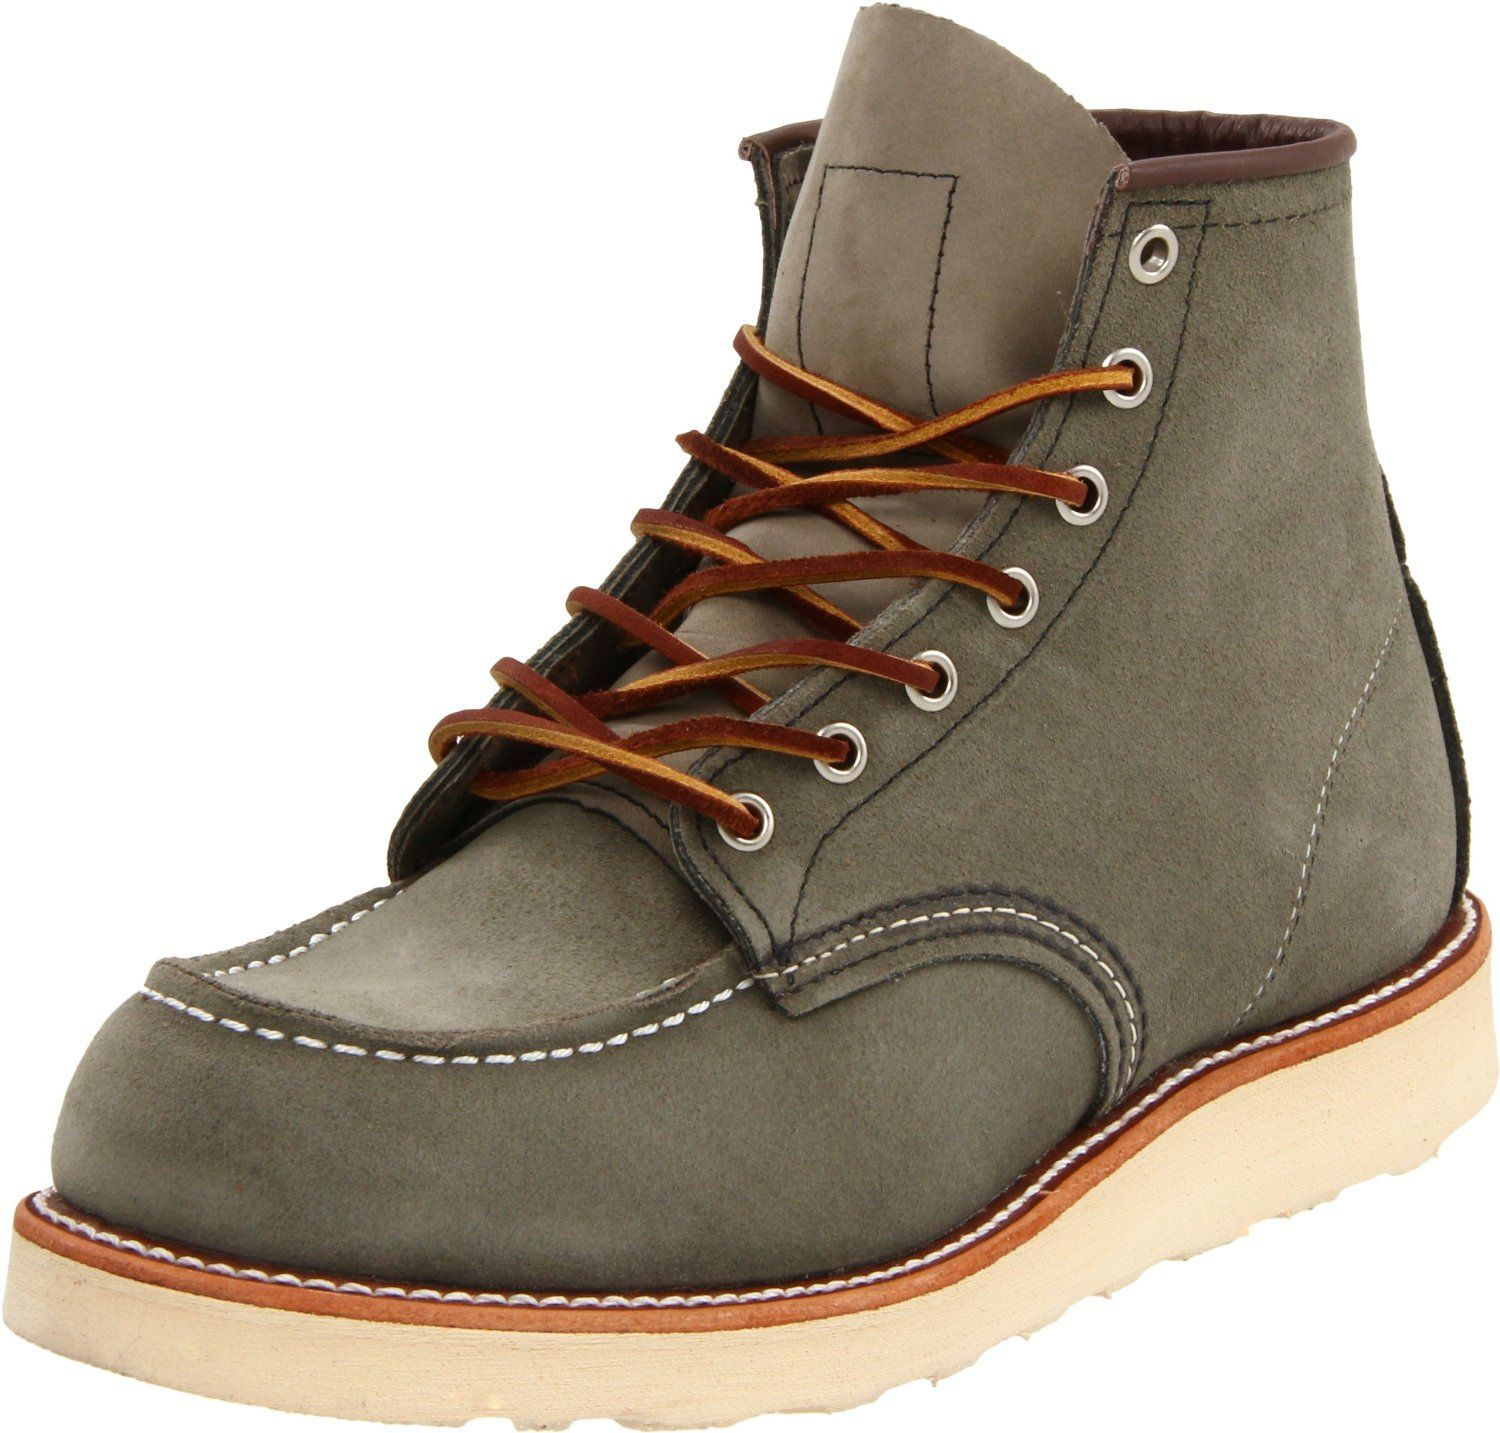 Red Wing Sage Moc Toe | Footwear | Pinterest